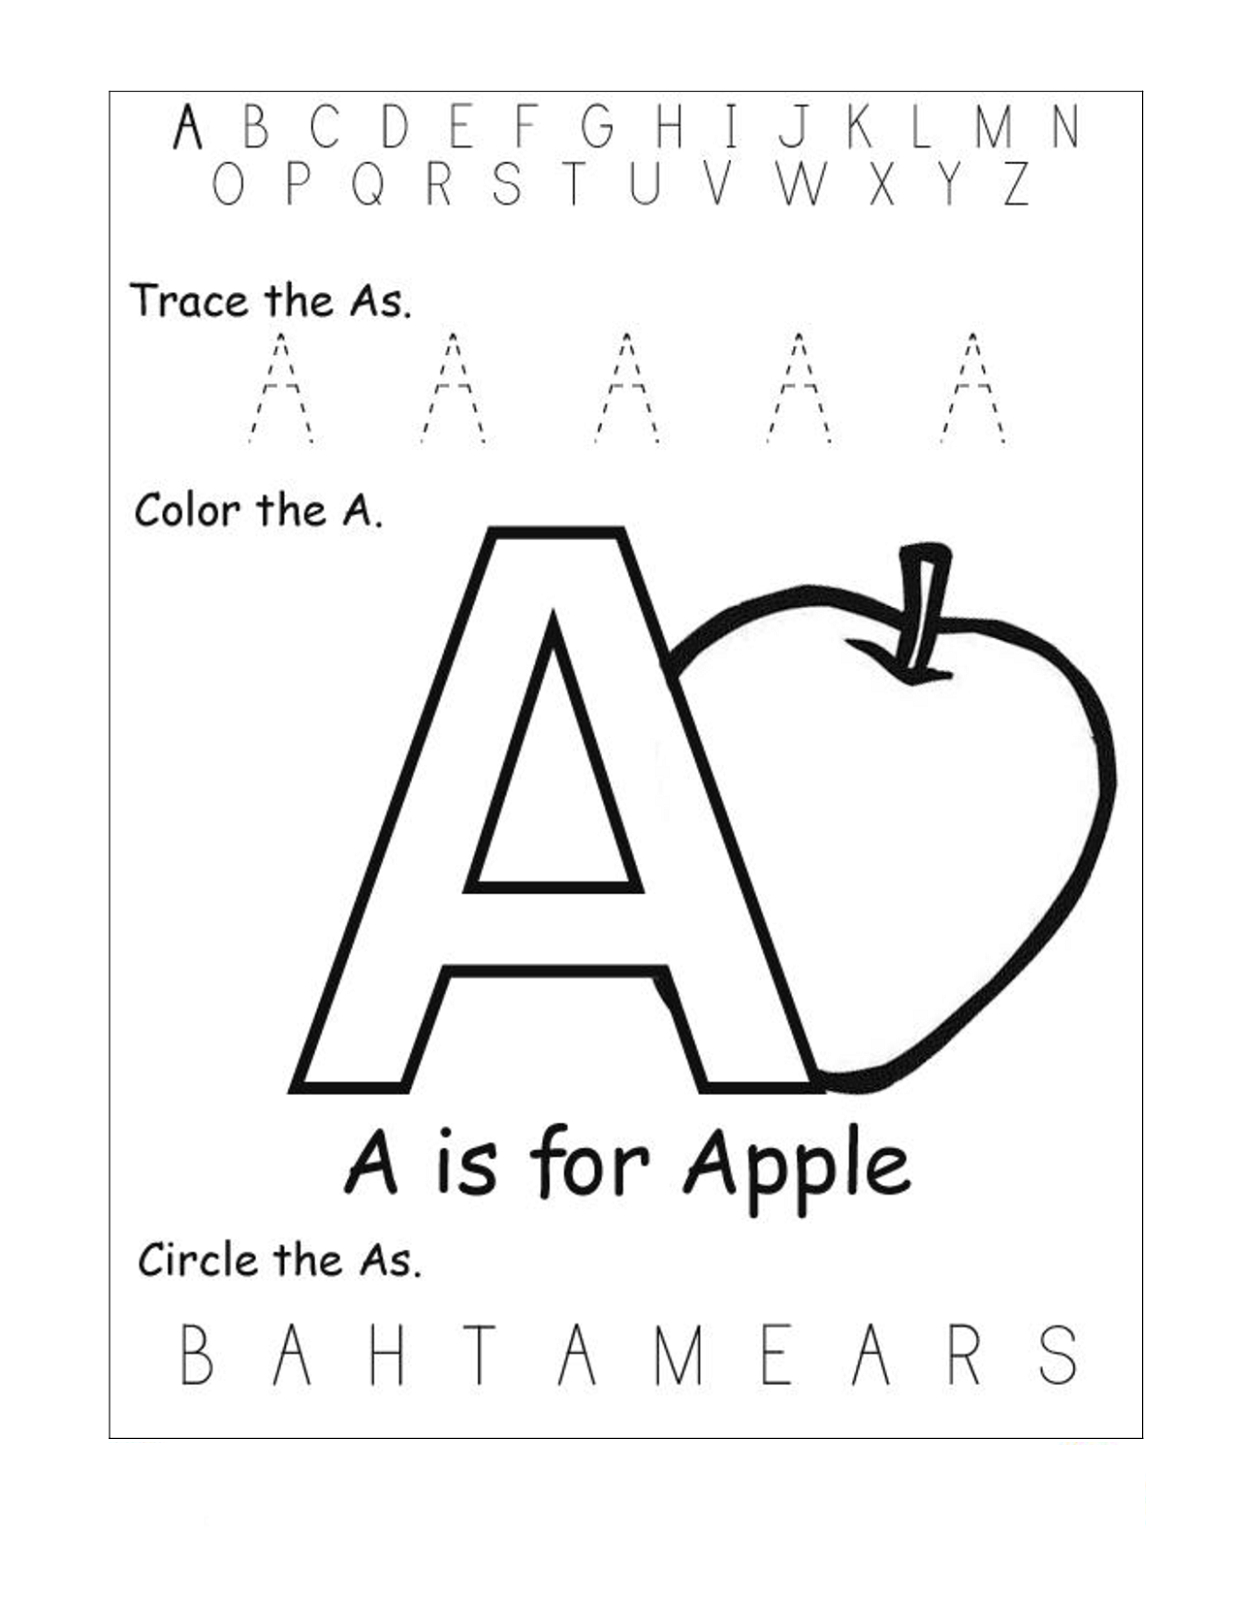 Free Abc Worksheets For Pre K | Activity Shelter regarding Pre-K Alphabet Worksheets Printable